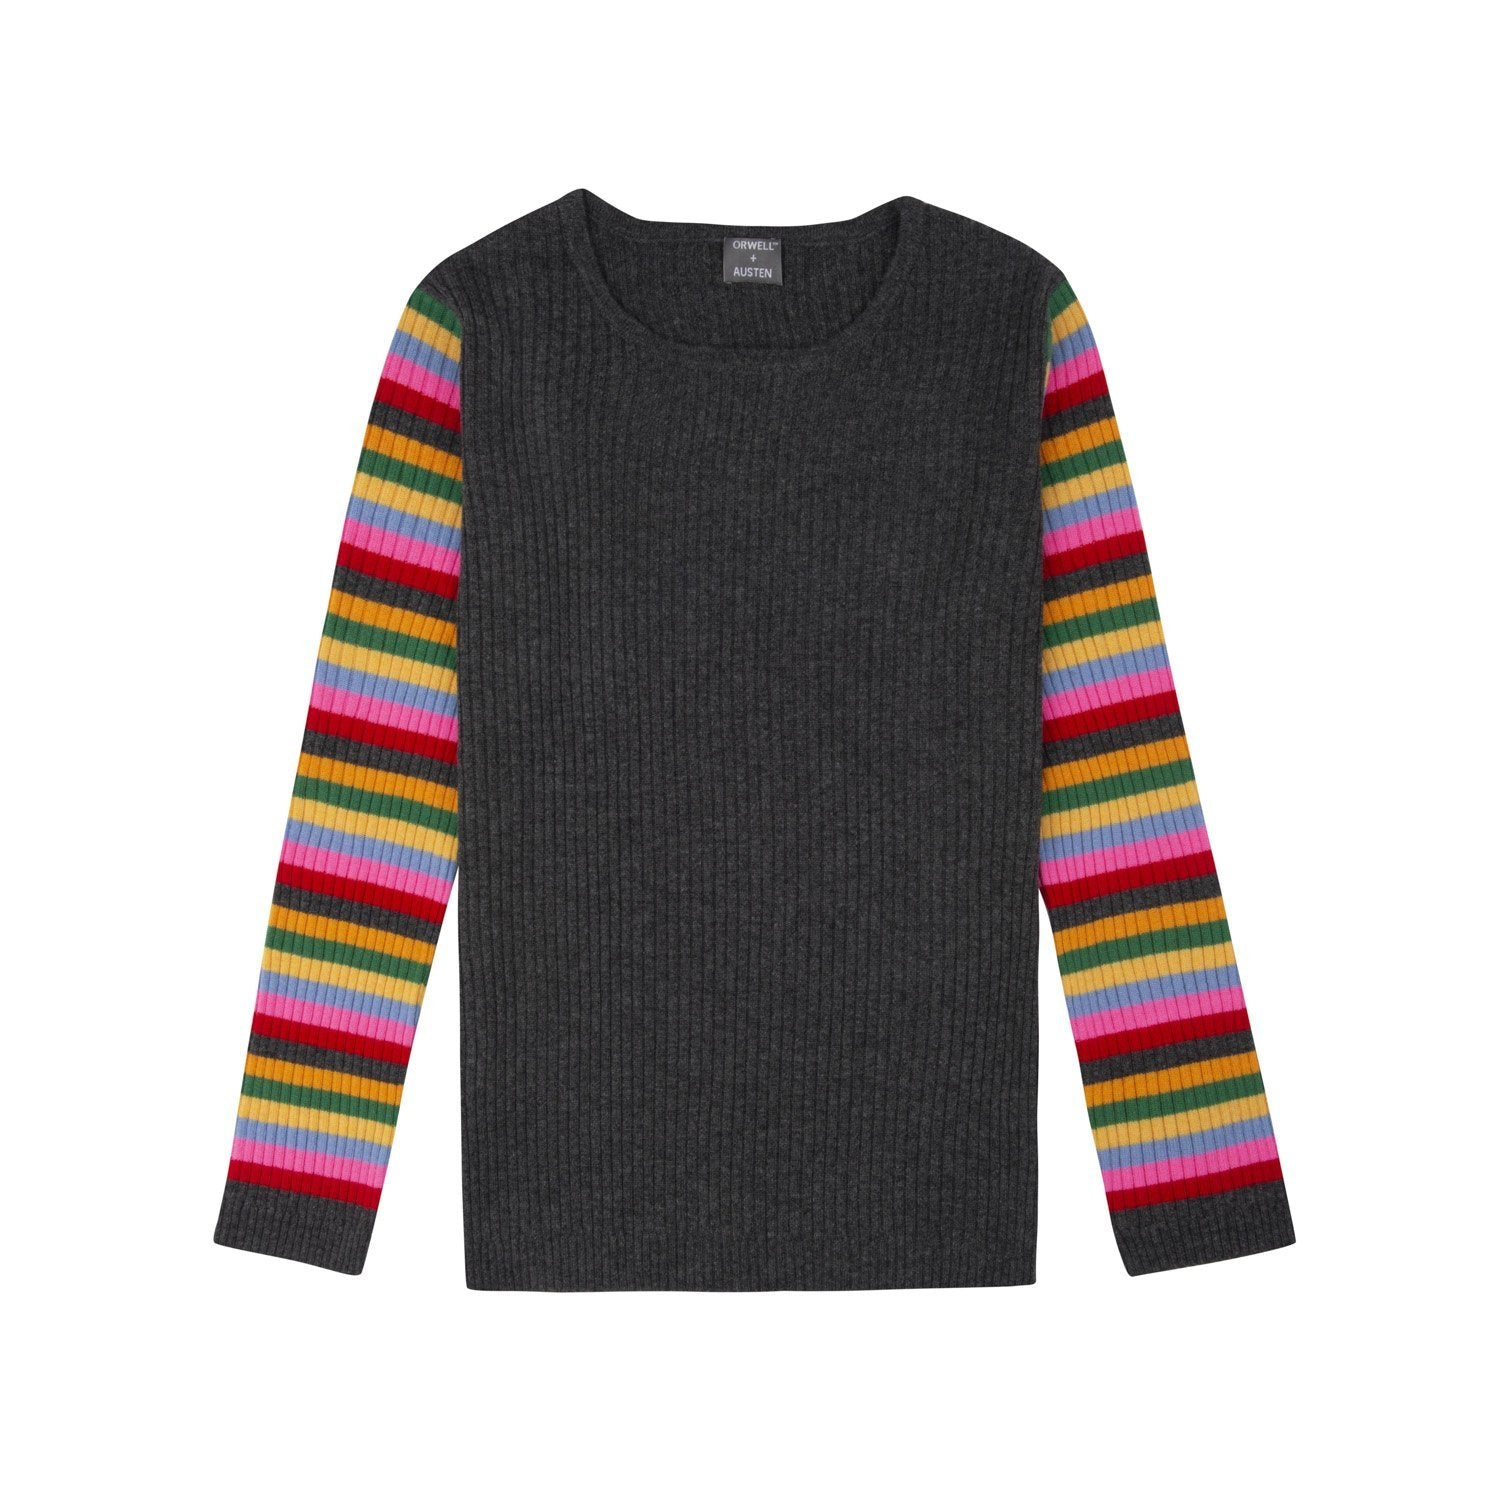 Rainbow Stripe Sleeve Ribbed Recycled Cashmere Sweater - Orwell + Austen